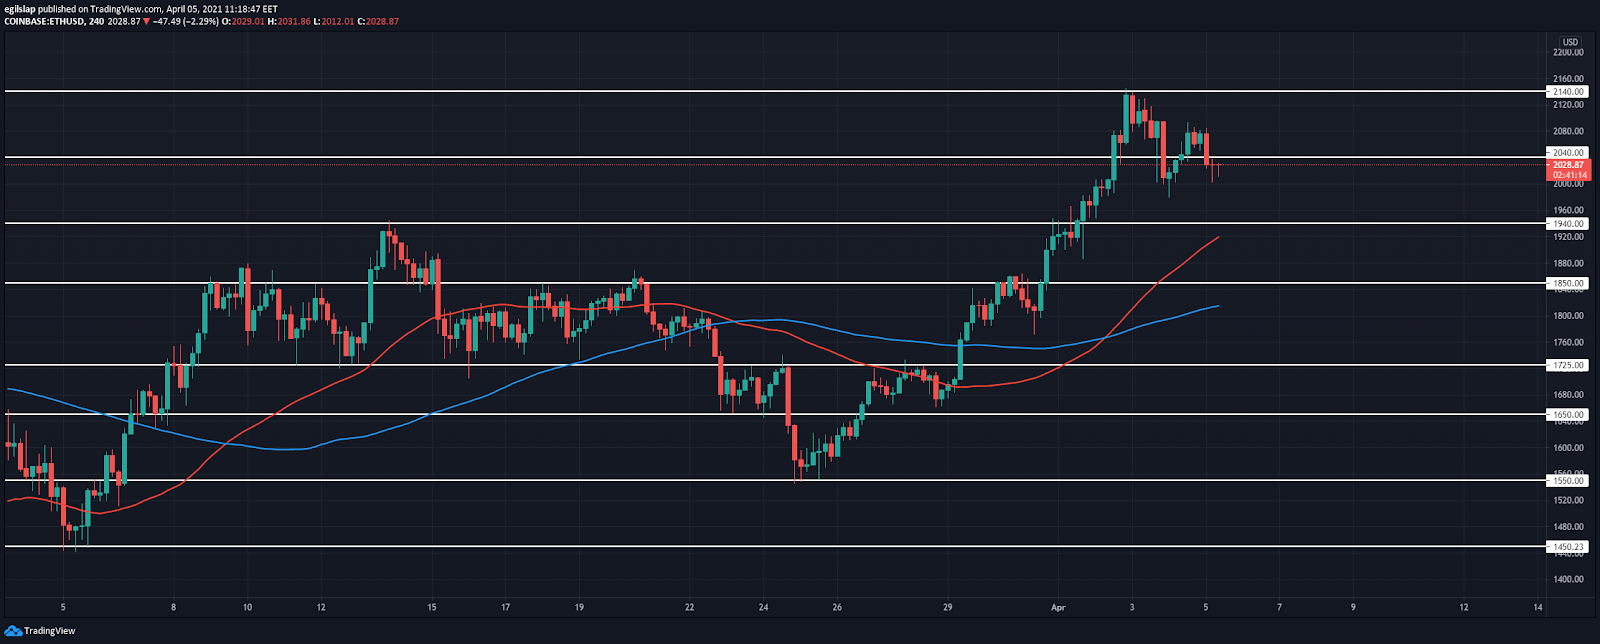 Ethereum price prediction: Ethereum fails to move higher, retests $2,000